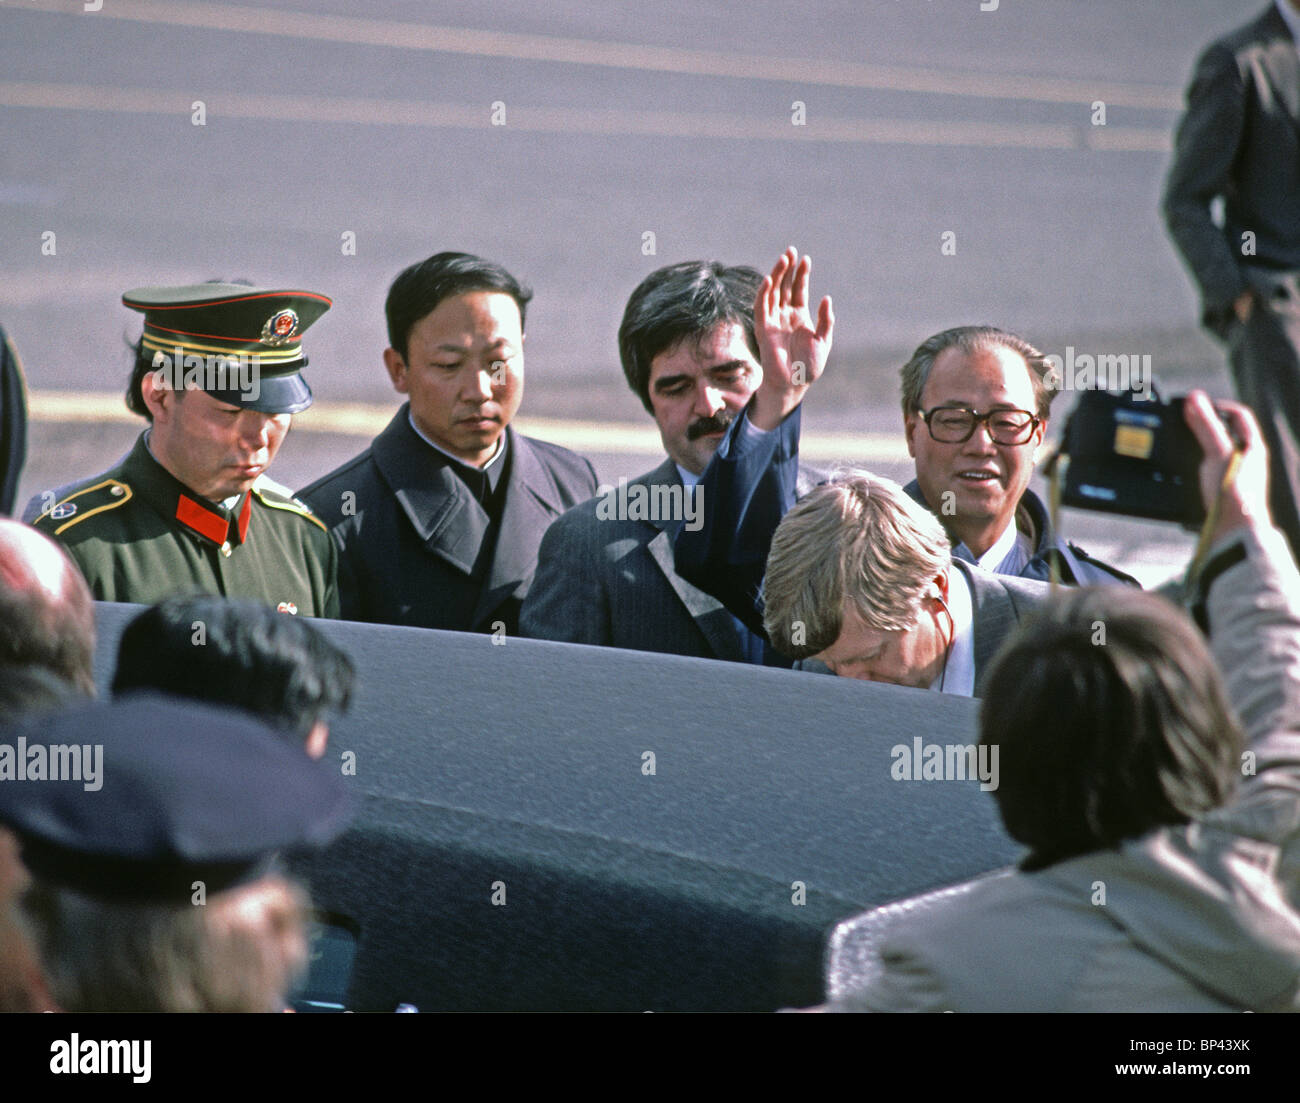 Zhao Ziyang, Premier Peoples Republic of China, waves to a photographer  during a 1984